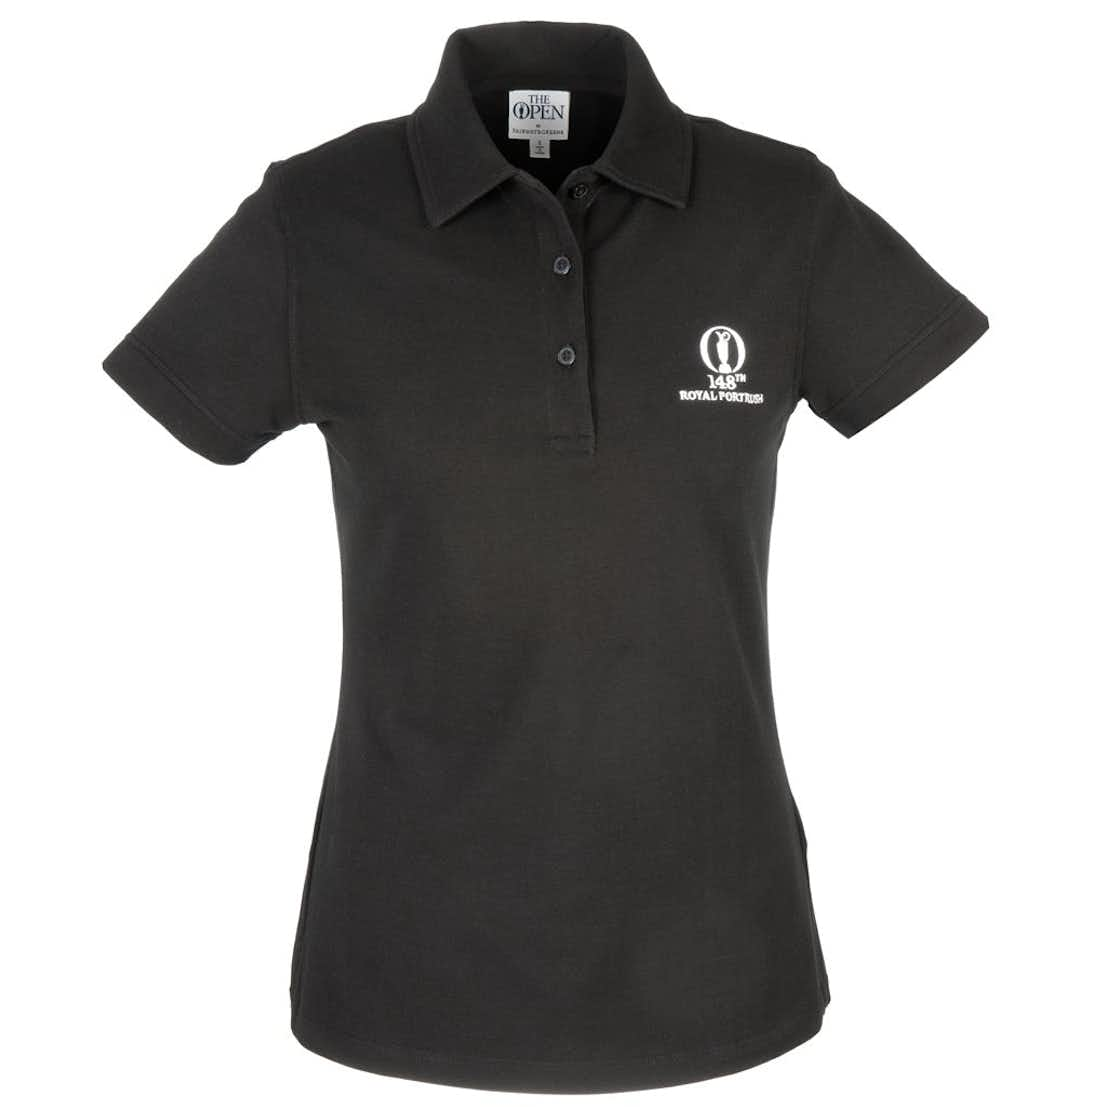 148th Royal Portrush Fairway & Greene Plain Polo - Black